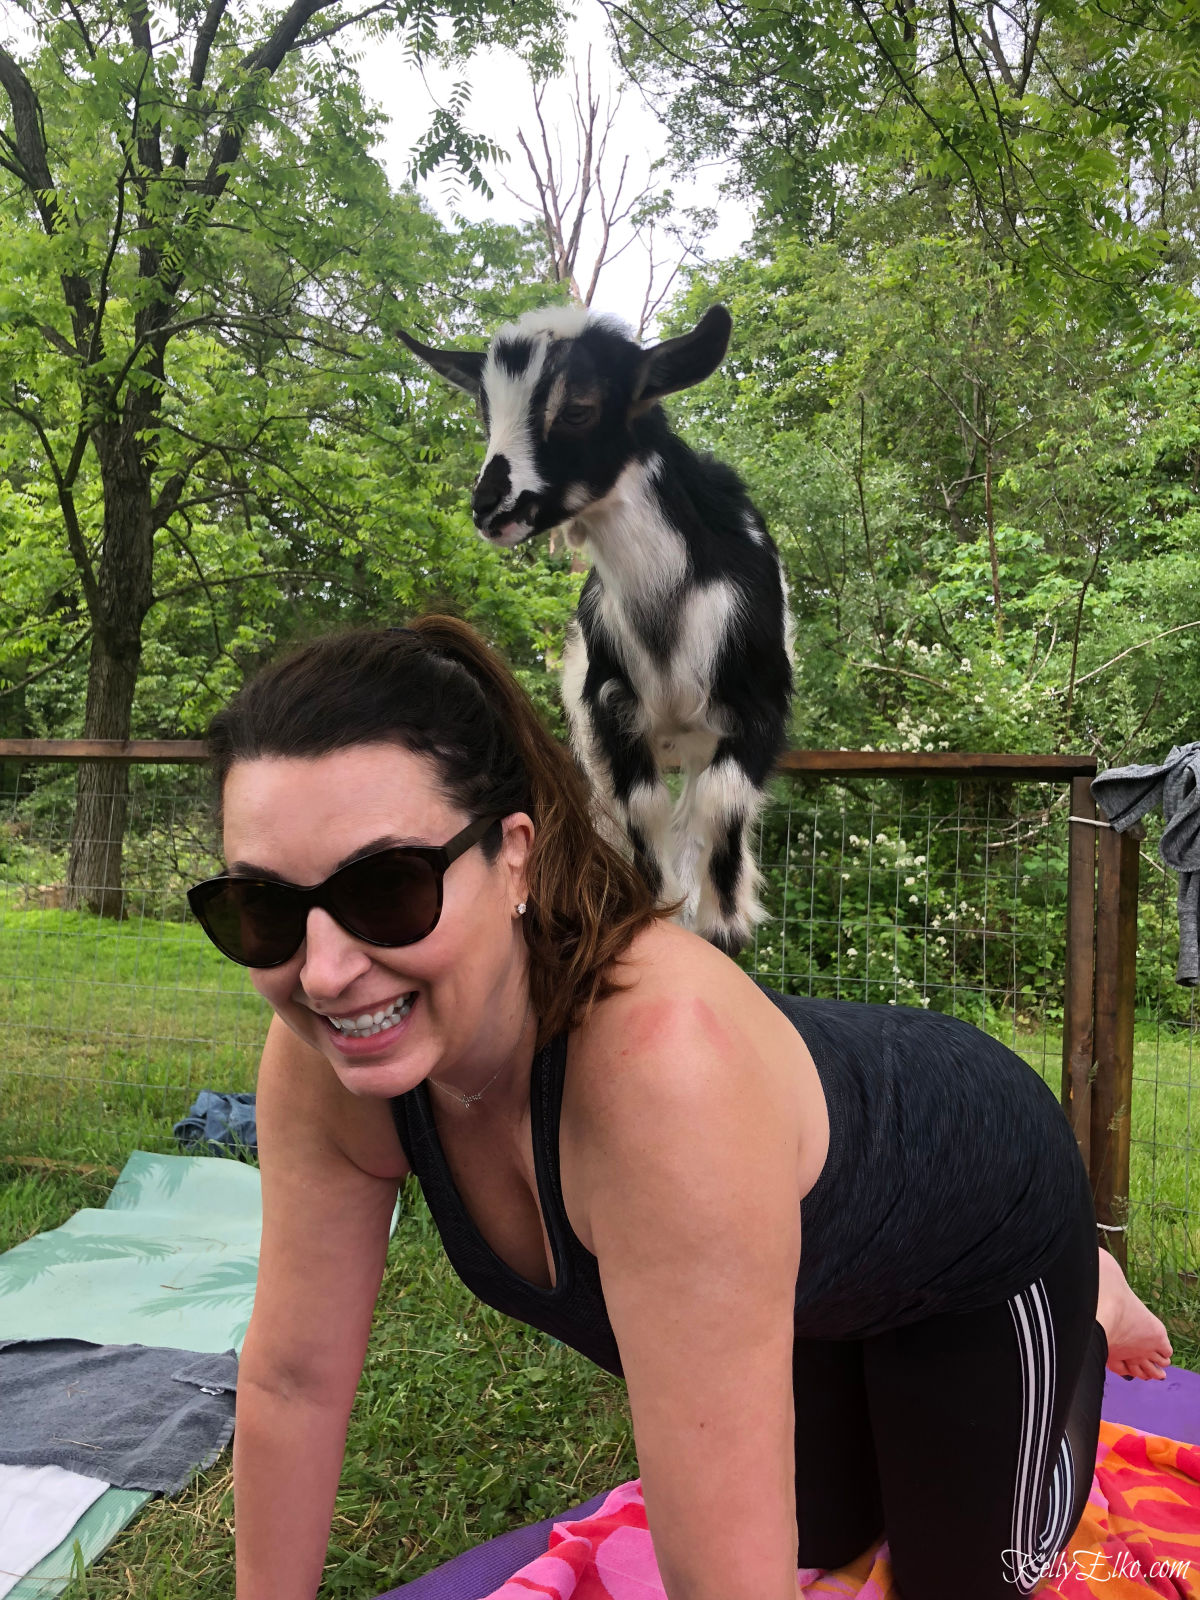 Have you tried goat yoga? Learn all about it kellyelko.com #52weeksofyes #goatyoga #selfcare #yoga